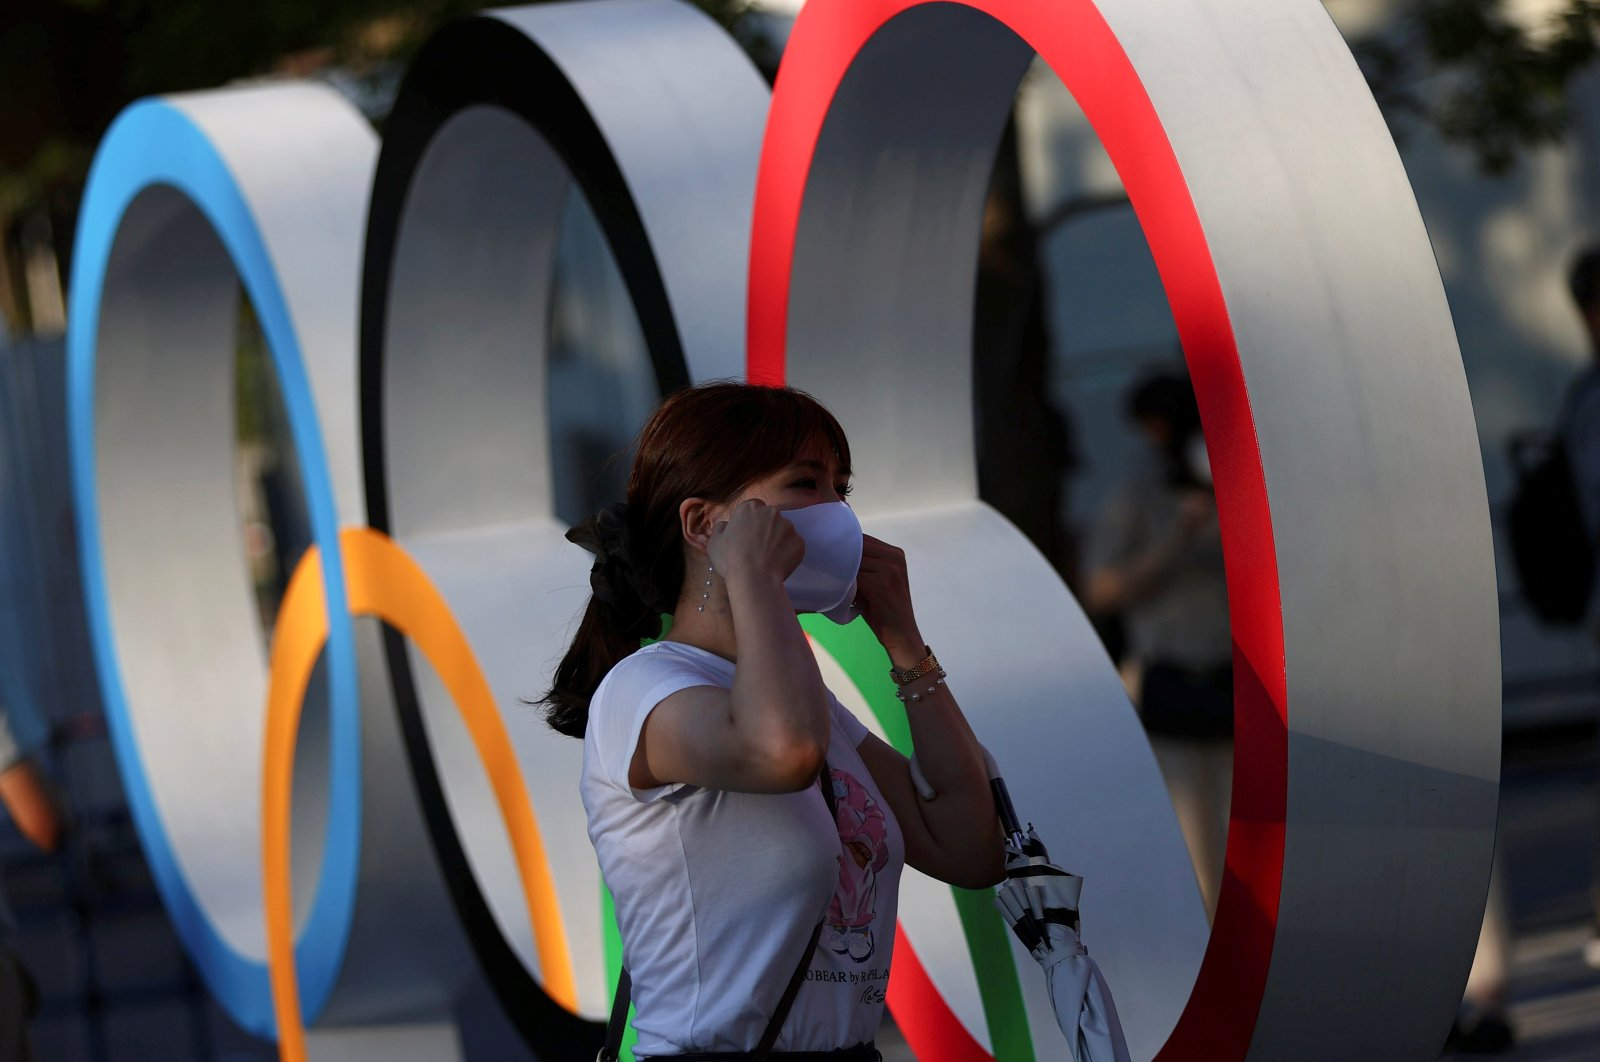 A woman adjusts her protective mask next to an Olympic rings monument outside the National Stadium, the main venue for the Tokyo 2020 Olympics amid the COVID-19 pandemic, Tokyo, Japan, July 31, 2021. (Reuters Photo)